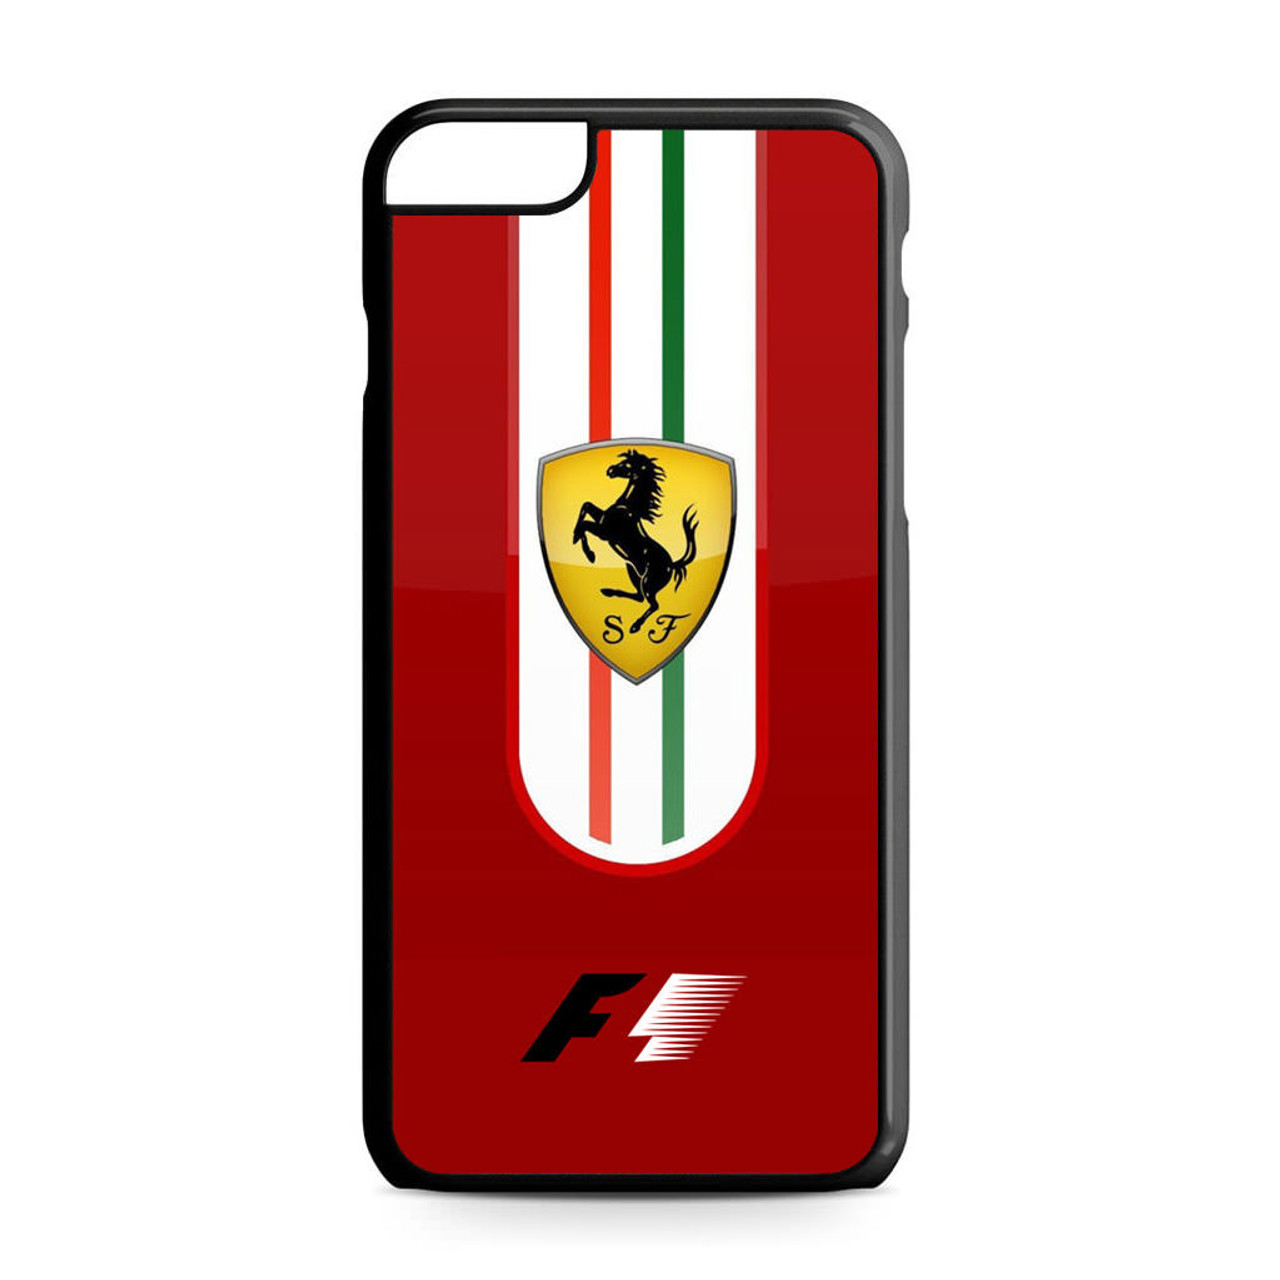 f1 phone case iphone 6